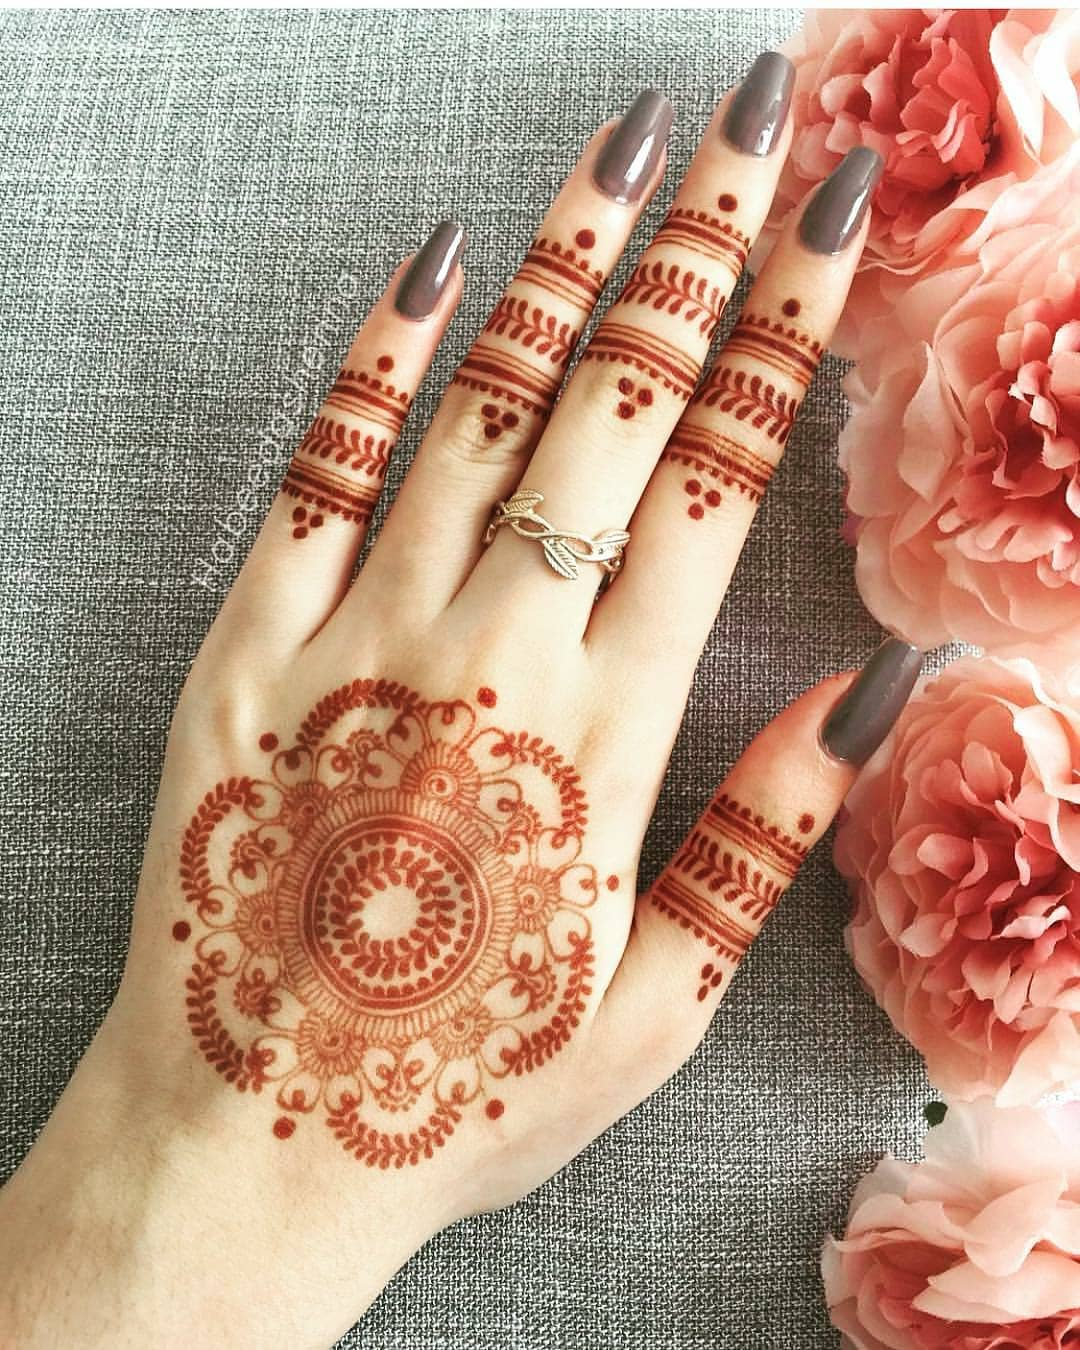 A quintessential mehendi design: Simple Mehendi Designs for Any Special Occasion